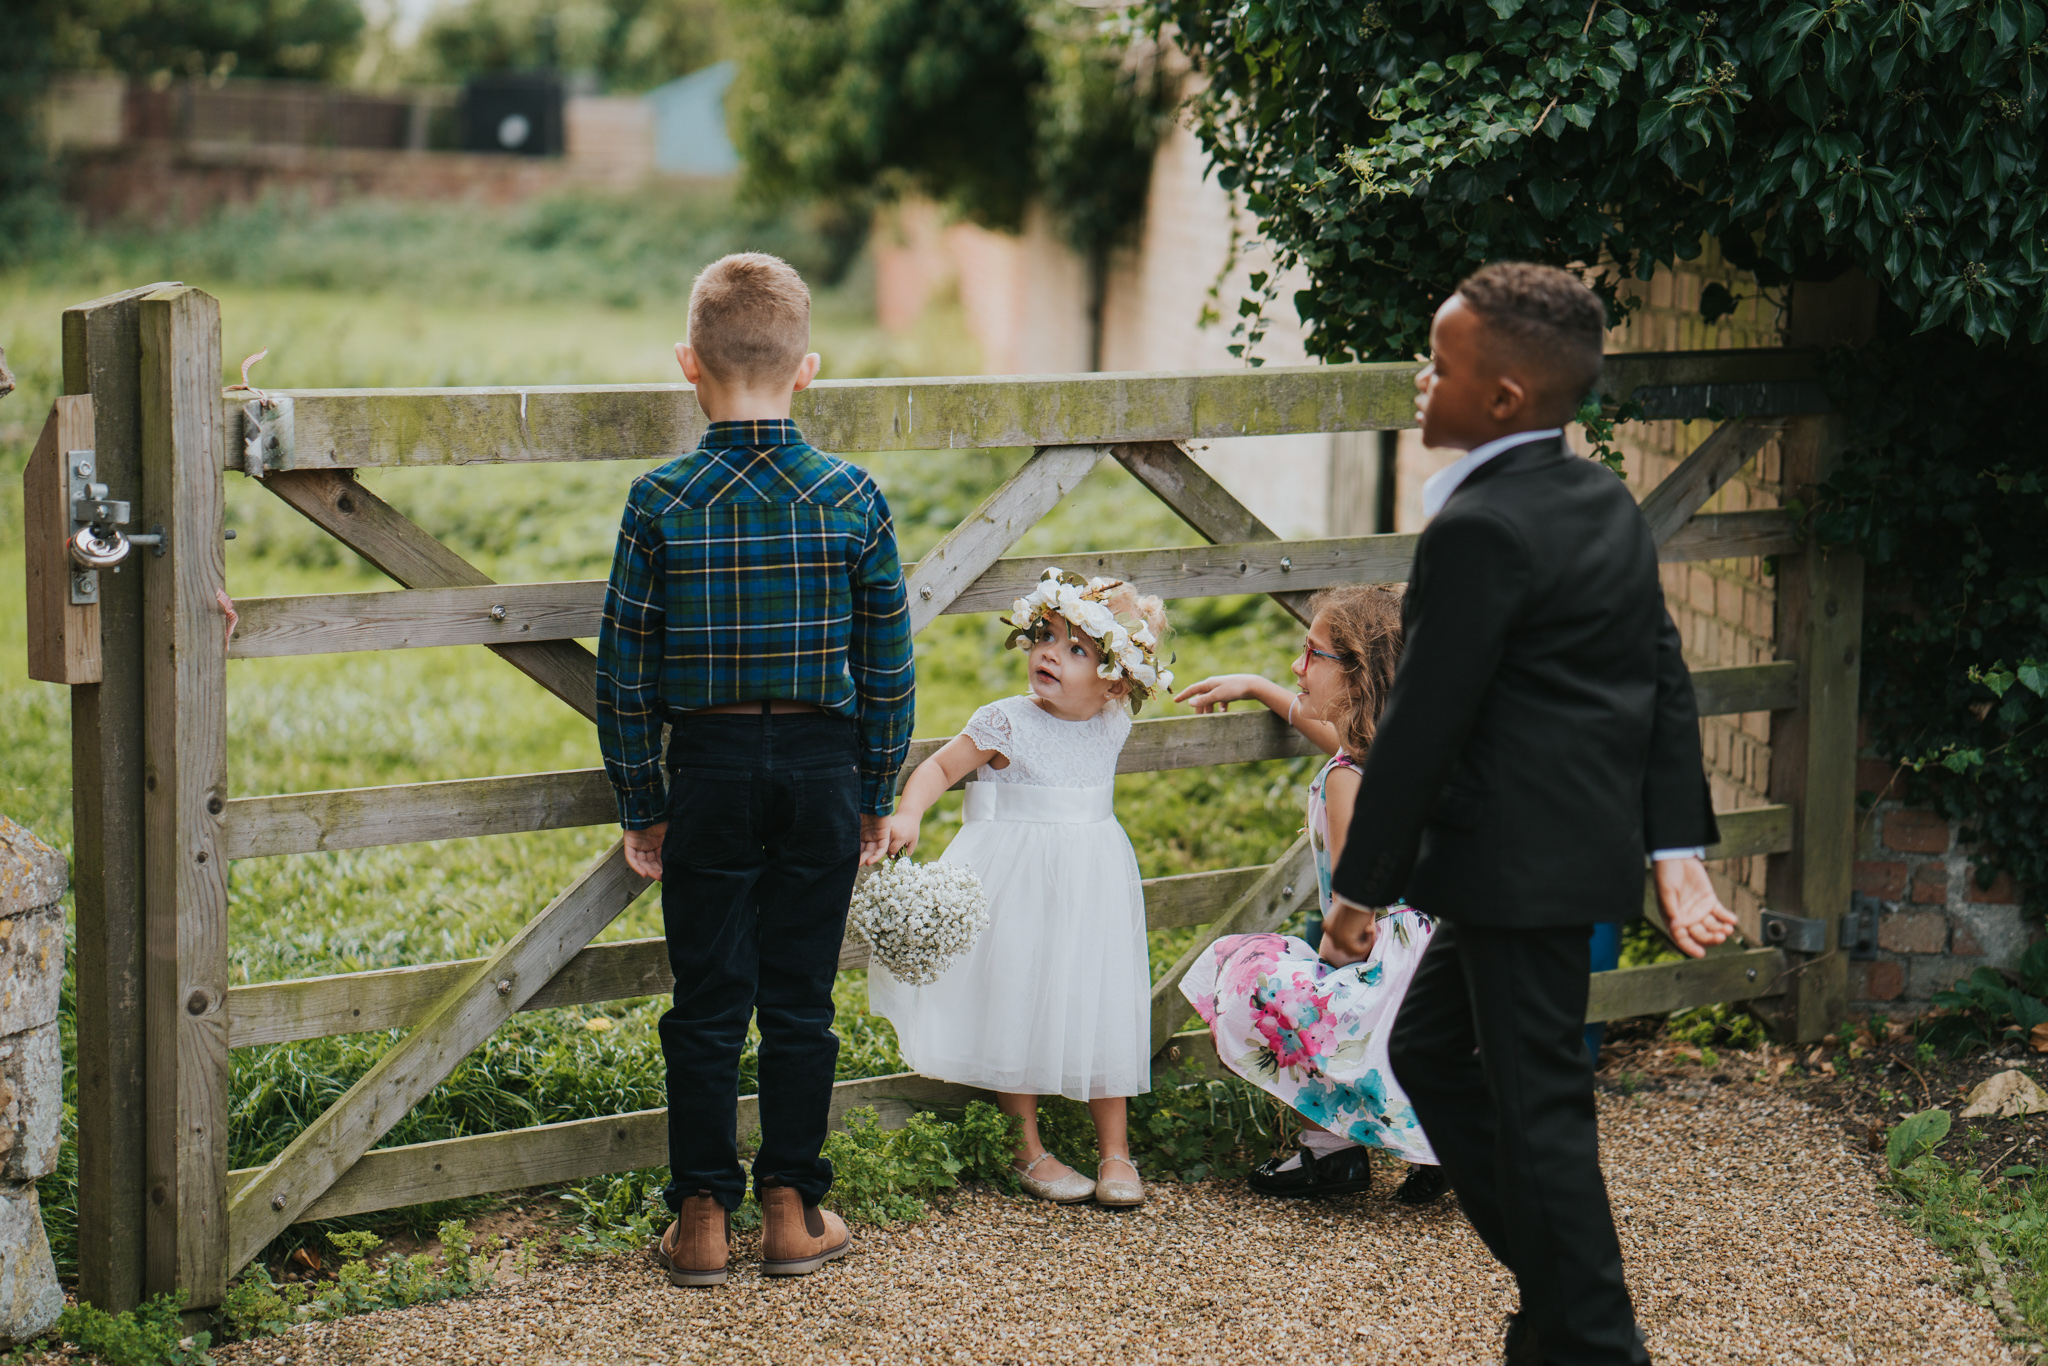 intimate-english-church-wedding-sarah-alex-colchester-essex-grace-elizabeth-colchester-essex-alternative-wedding-lifestyle-photographer-essex-suffolk-norfolk-devon (71 of 92).jpg